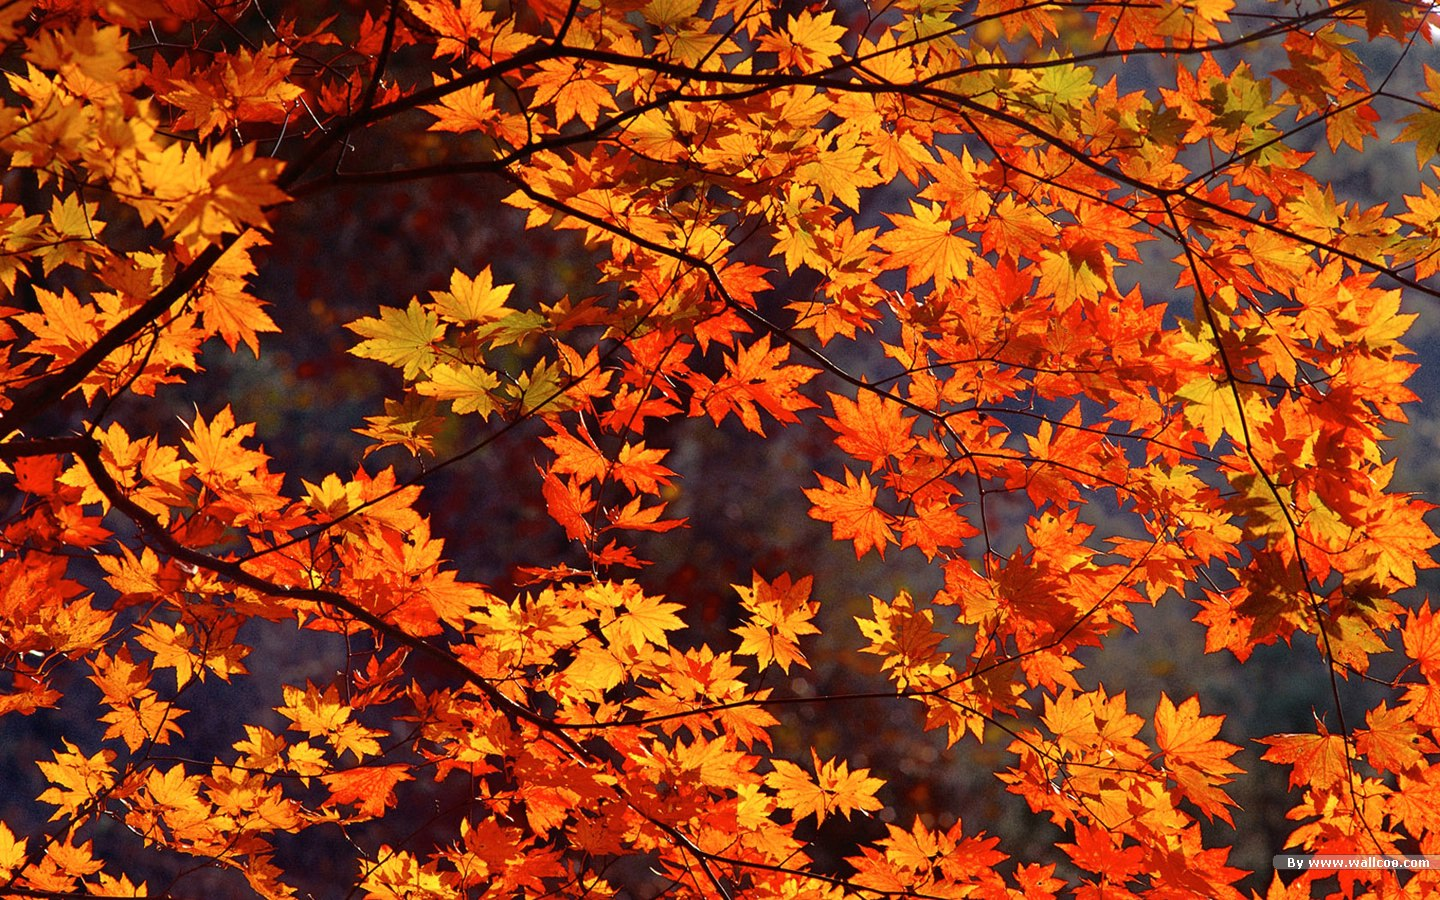 autumn golden seasonwallpapers1440x900Fall Secenry Autumn Leaves 1440x900